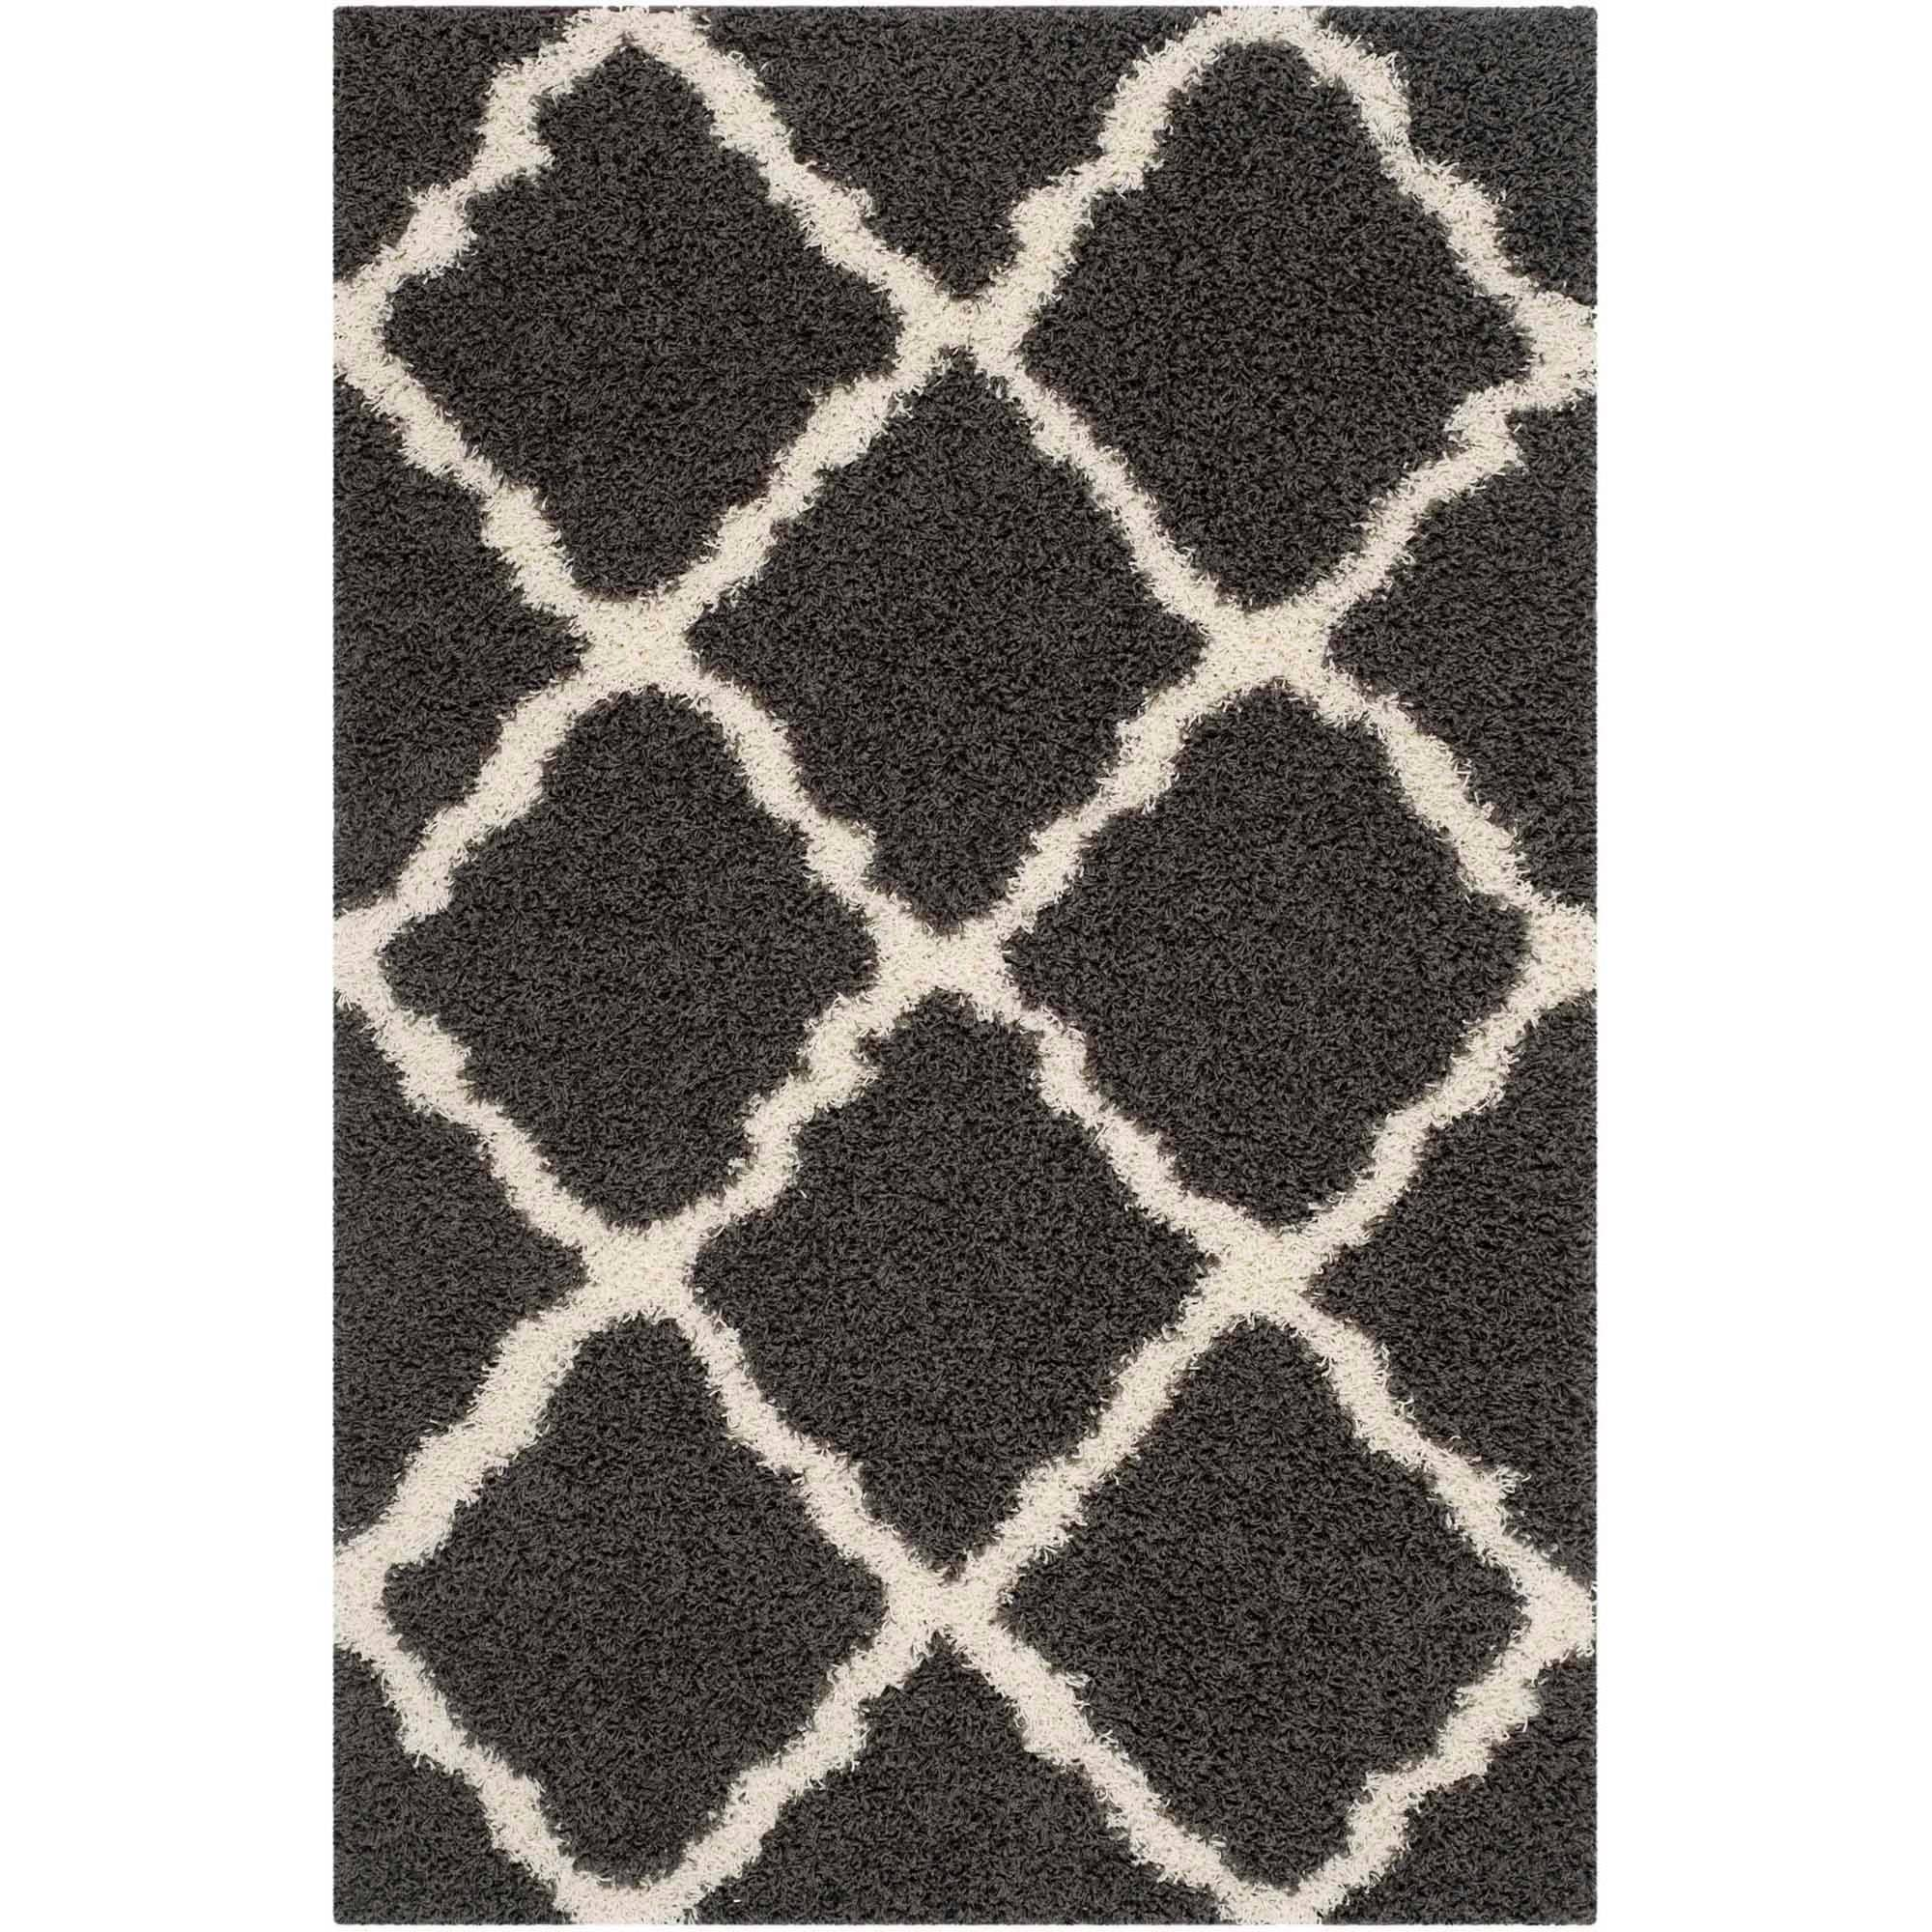 Safavieh Dallas Power Loomed Shag Area Rug